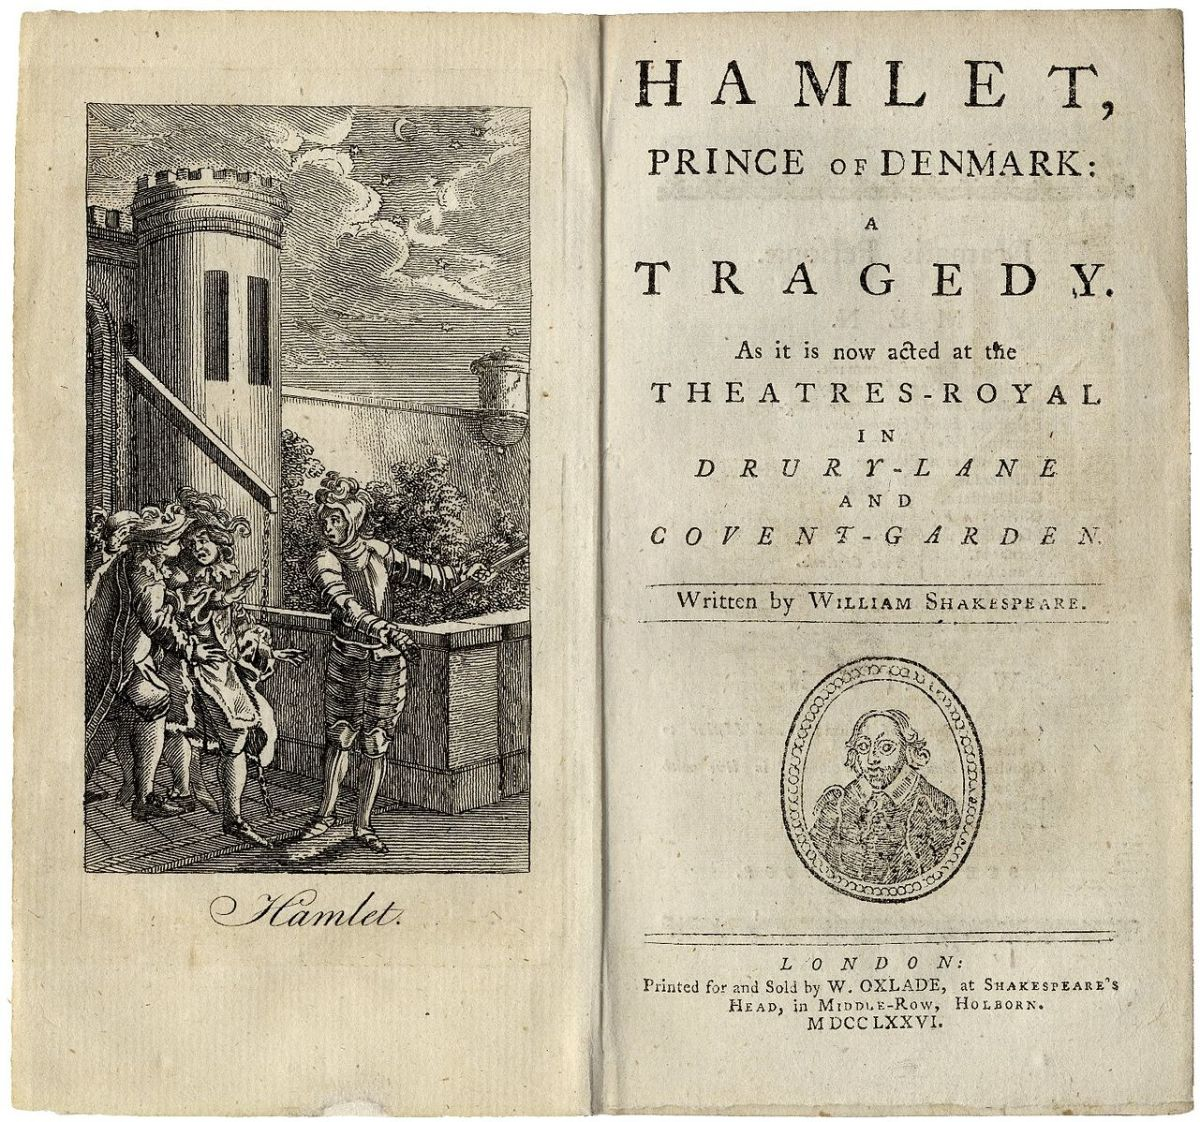 Title page and frontispiece for Hamlet, Prince of Denmark: A Tragedy.